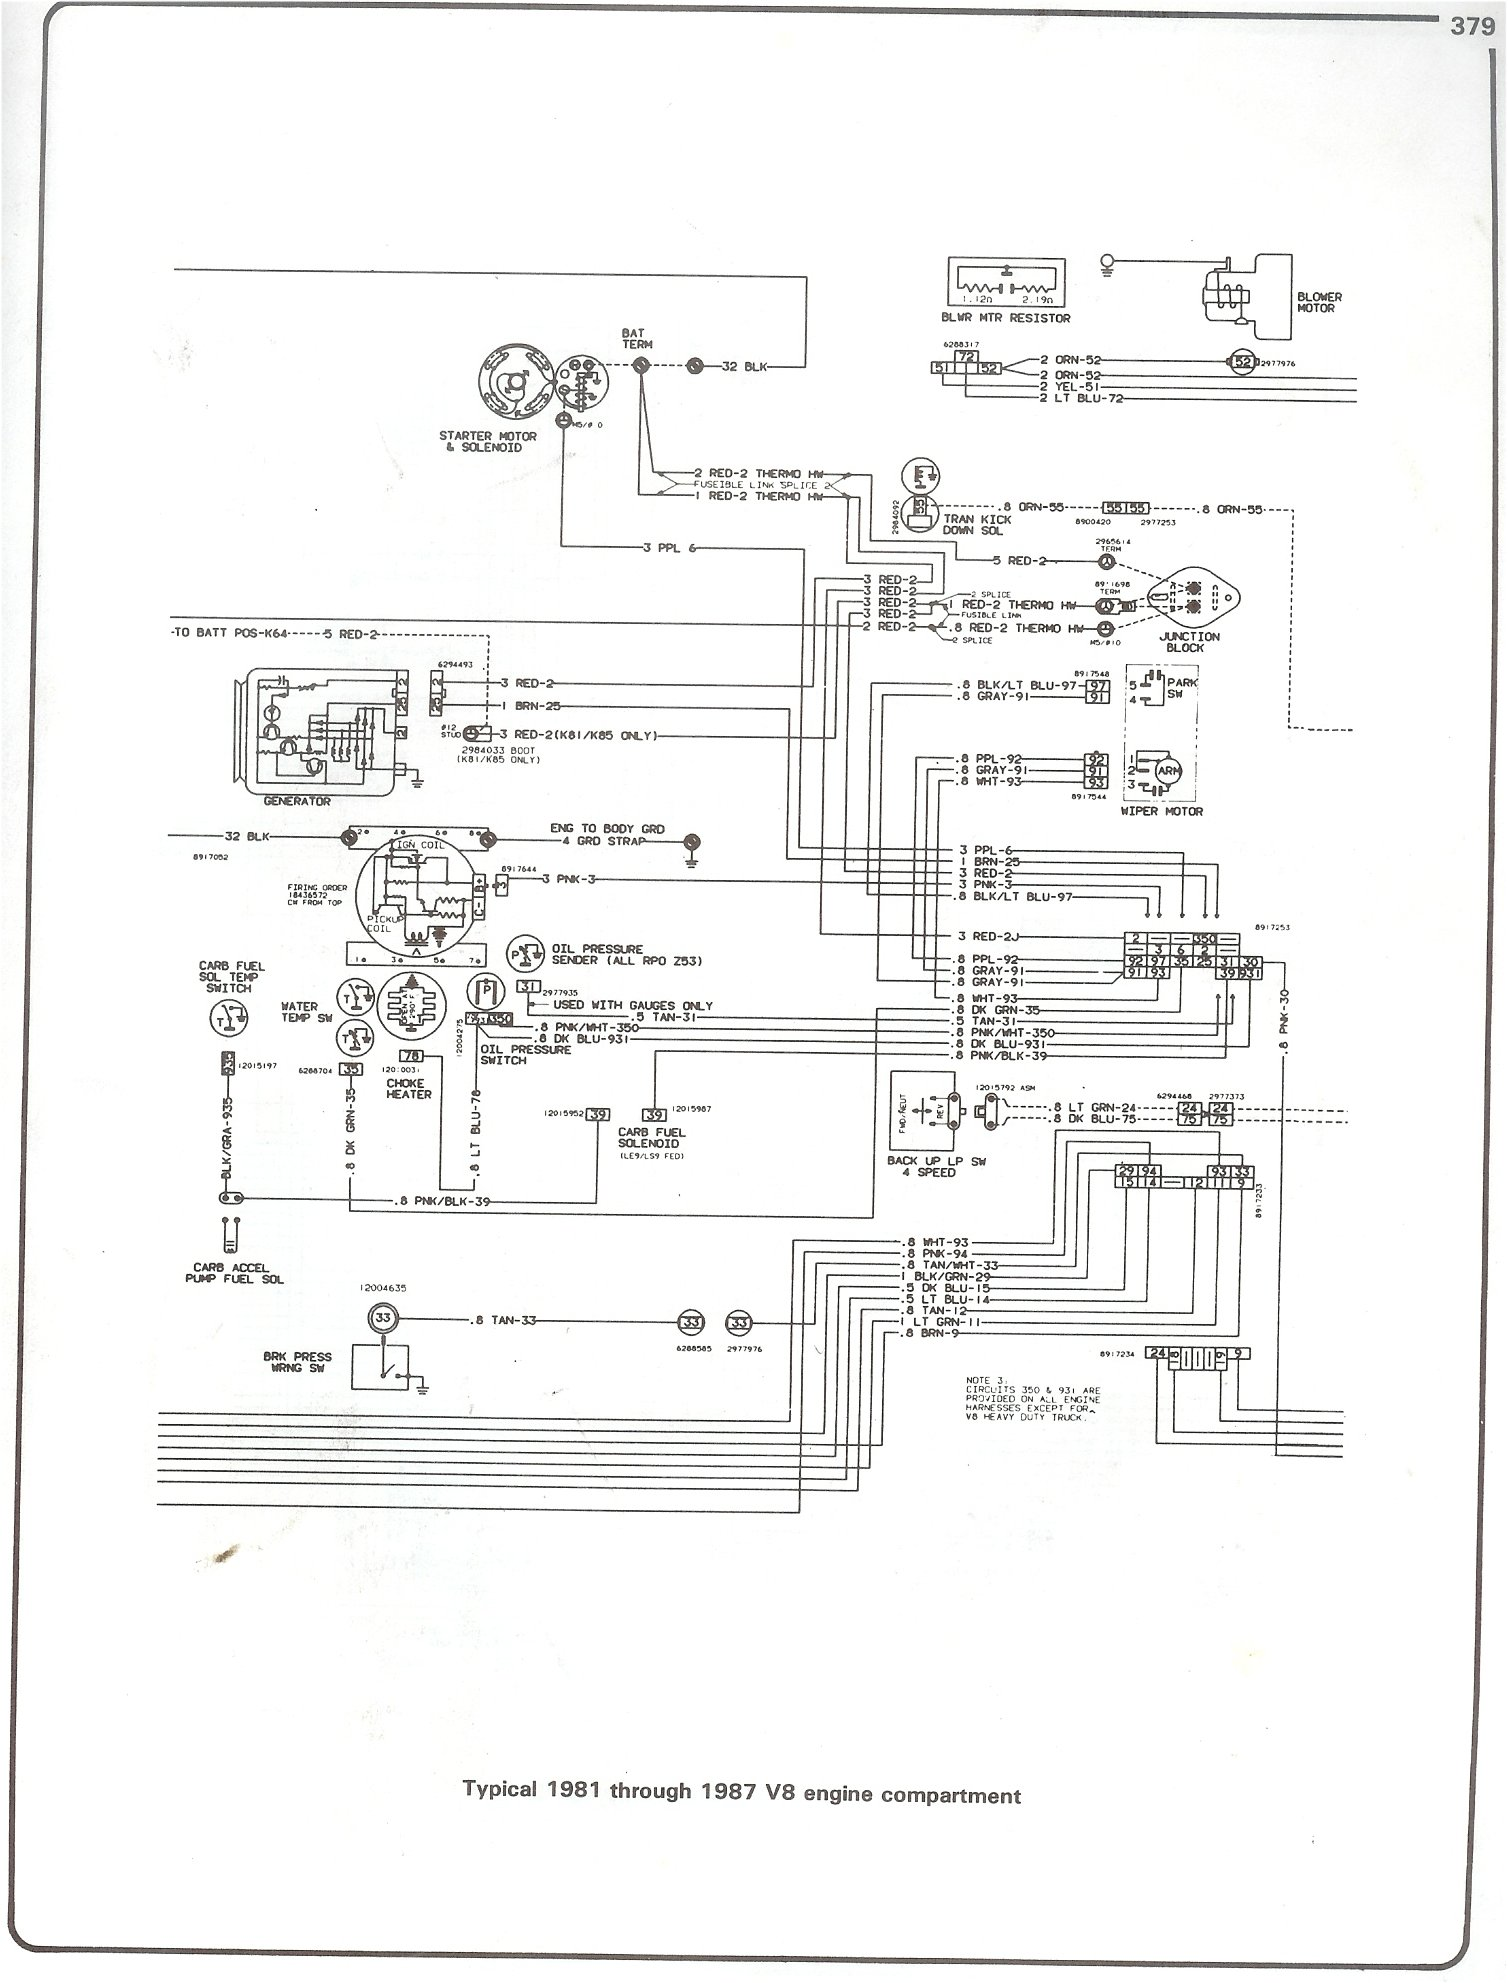 81 87_V8_engine complete 73 87 wiring diagrams wiring diagram for 1983 chevy pickup at mifinder.co